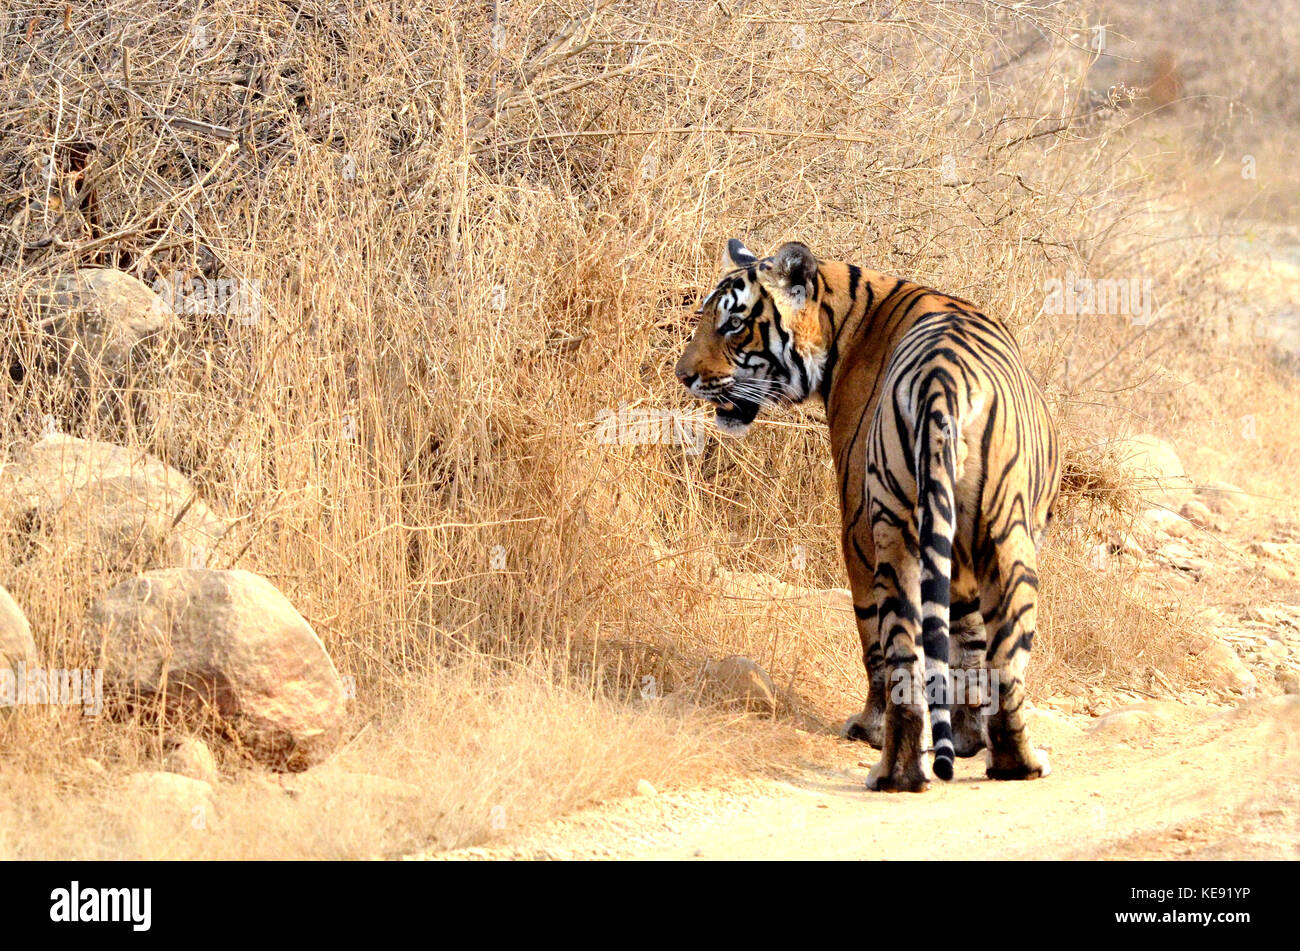 Bengal Tiger, Ranthambore National Park - Stock Image